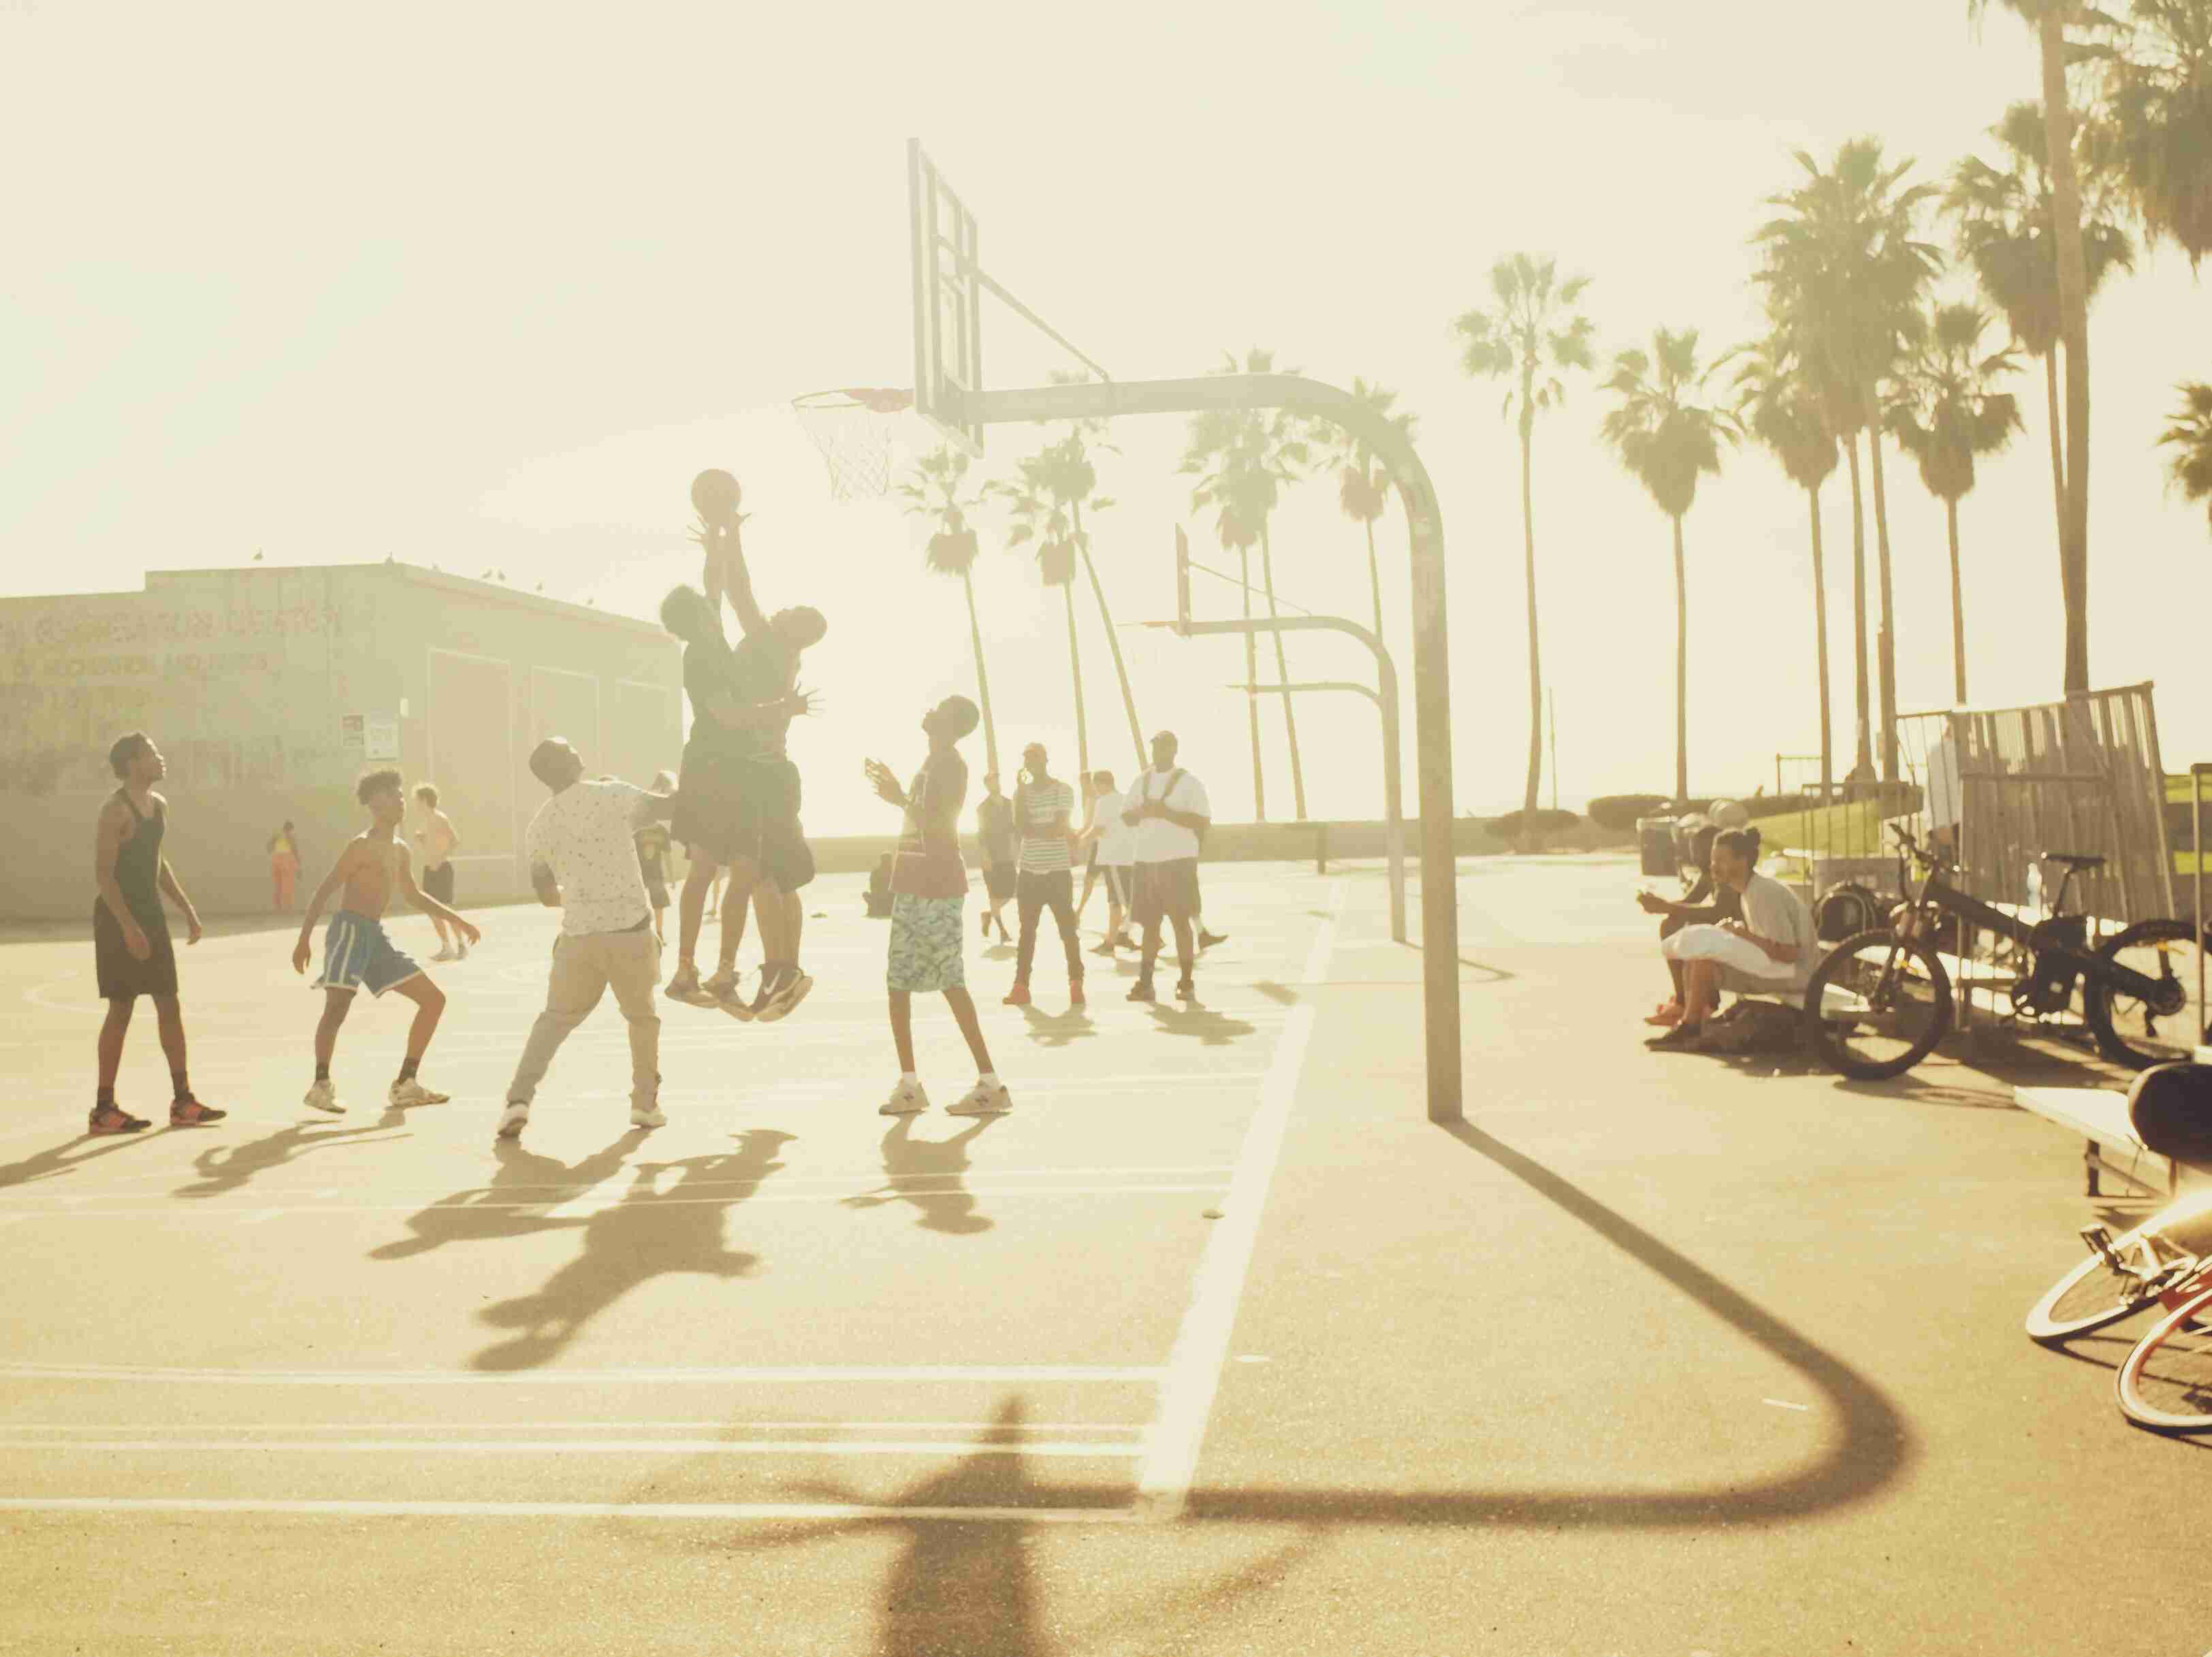 Group Of People Playing Basketball In Venice Beach, United States During Sunset